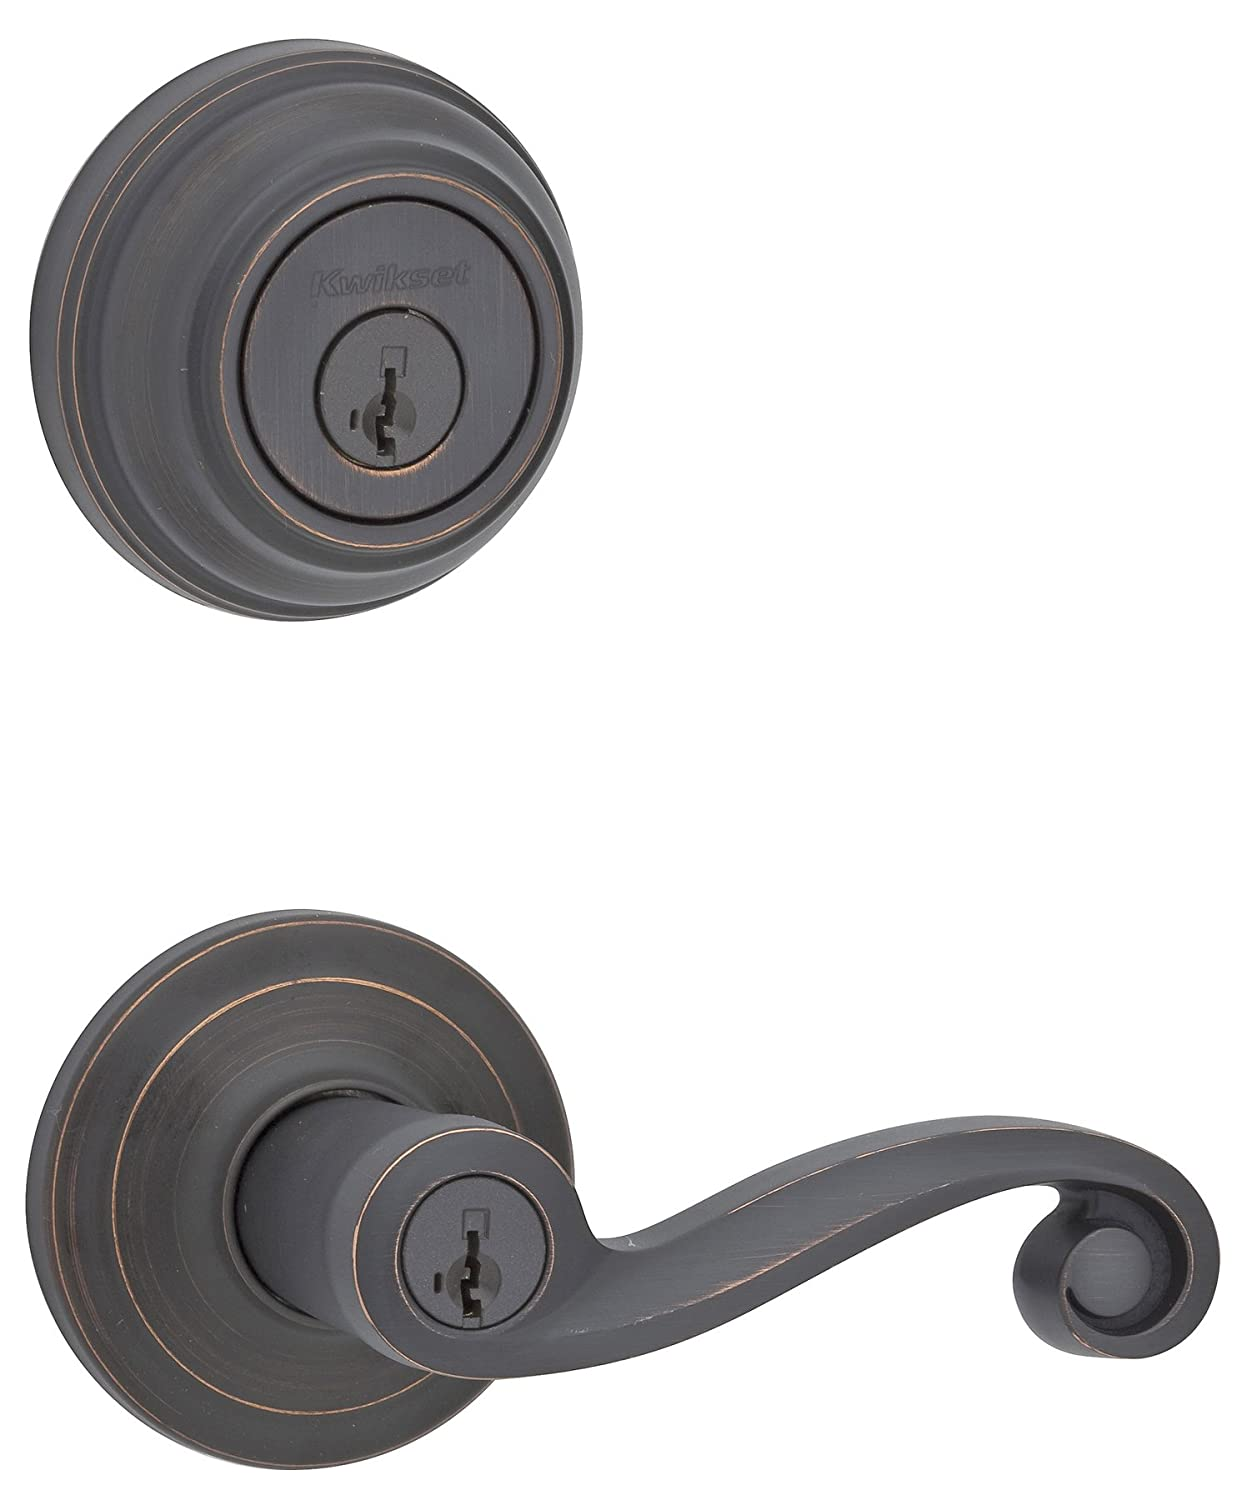 Kwikset 991 Lido Entry Lever And Single Cylinder Deadbolt Combo Pack  Featuring SmartKey In Polished Brass   Door Handles   Amazon.com